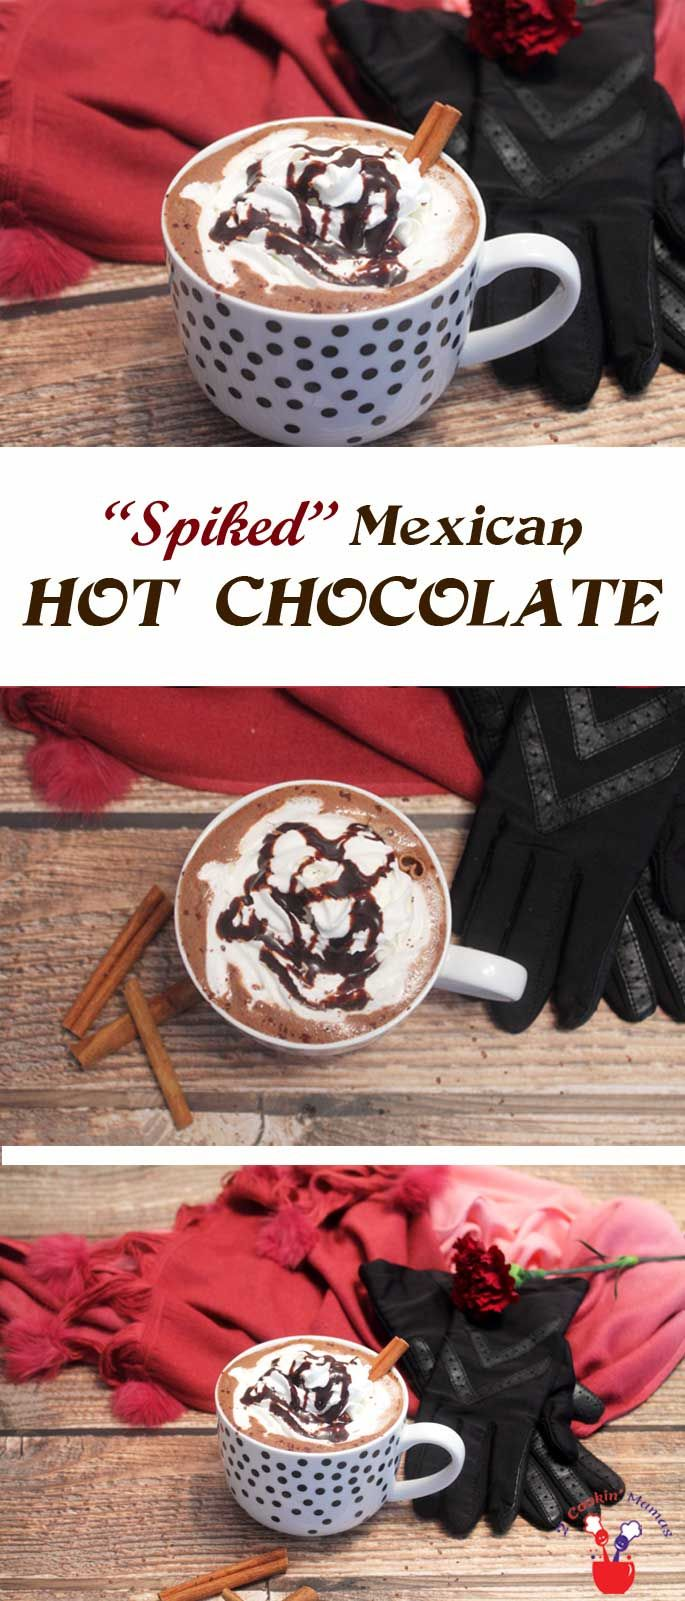 Spiked Mexican Hot Chocolate is the perfect drink for a cold night. Rich hot chocolate, flavored with cinnamon, is kicked up a notch with coffee tequila. via @2CookinMamas